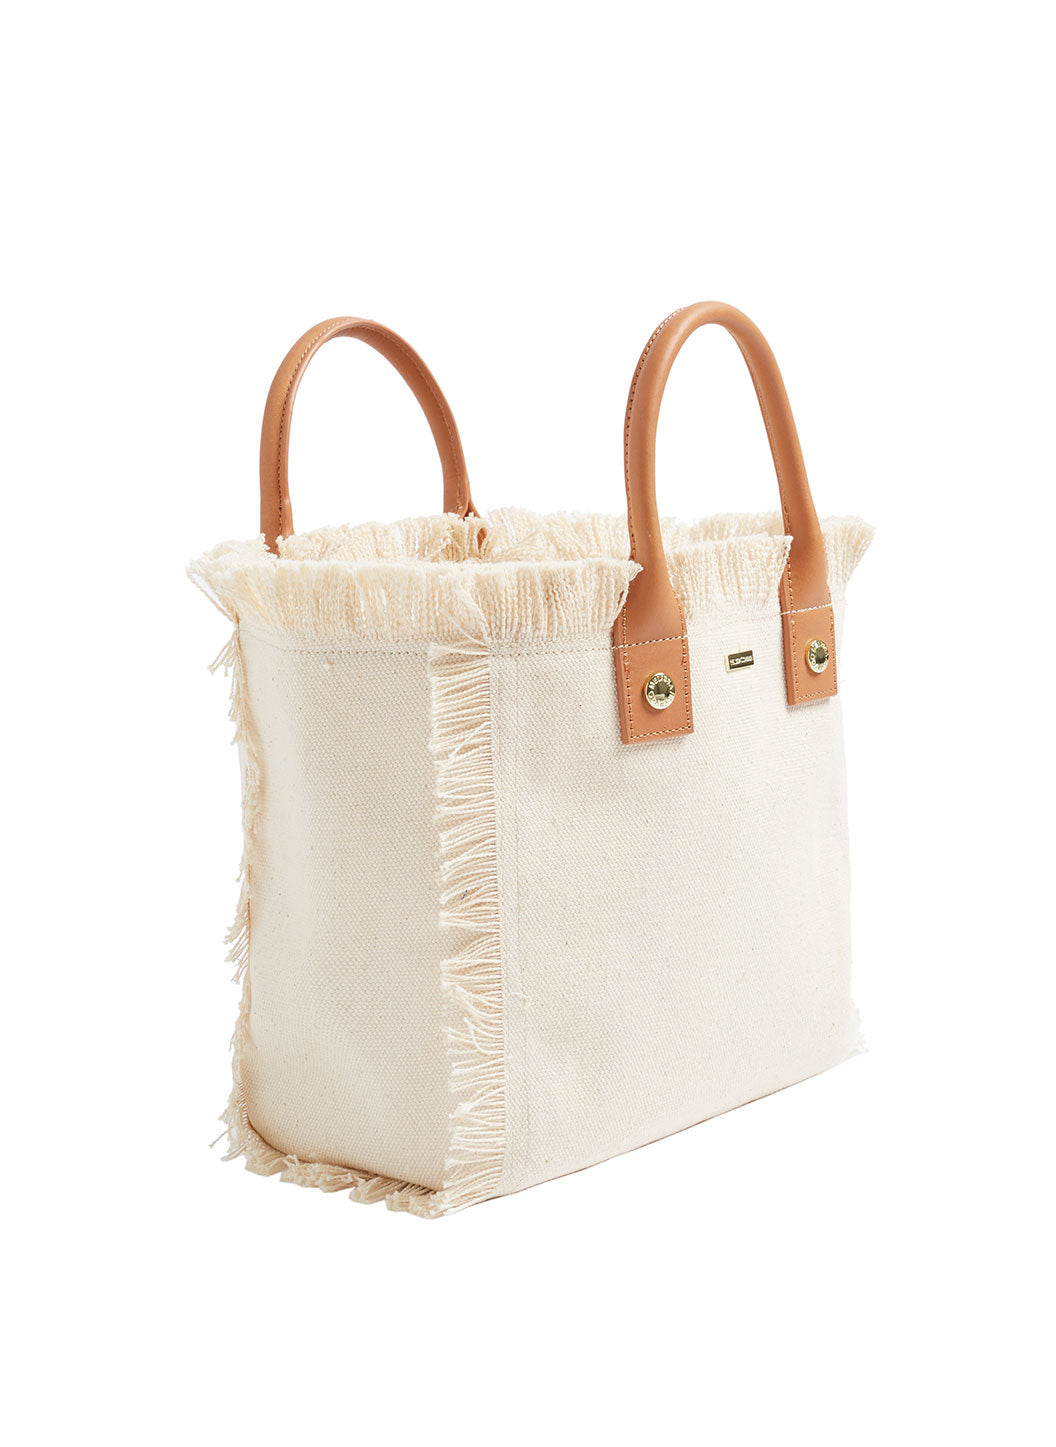 Portocervo Mini Beach Tote Beige - Melissa Odabash Accessories